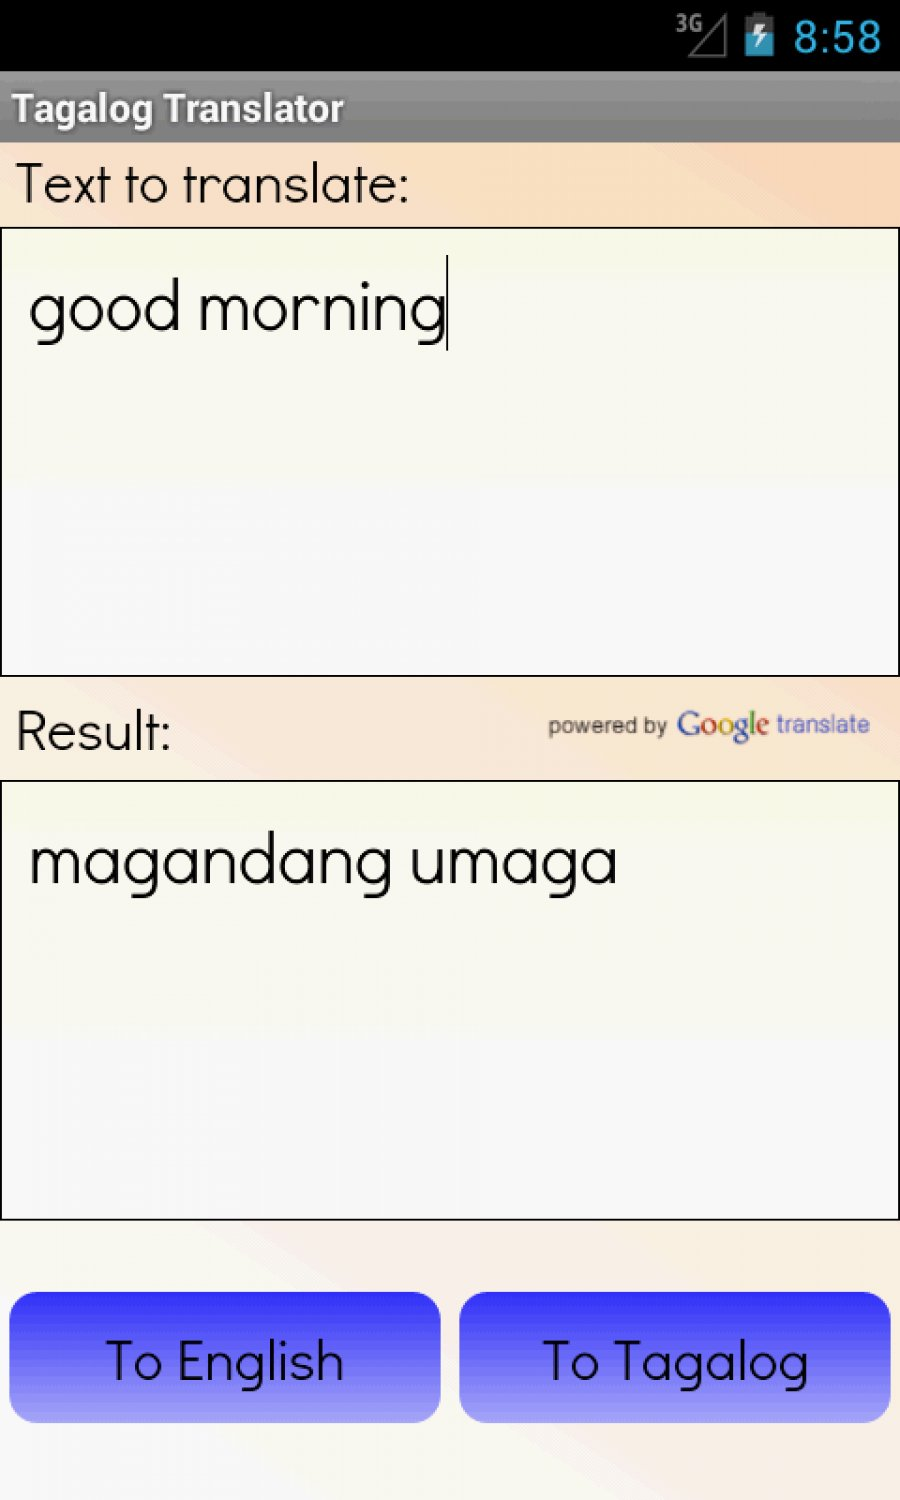 Tagalog English Translator Apk For Android - Approm.org